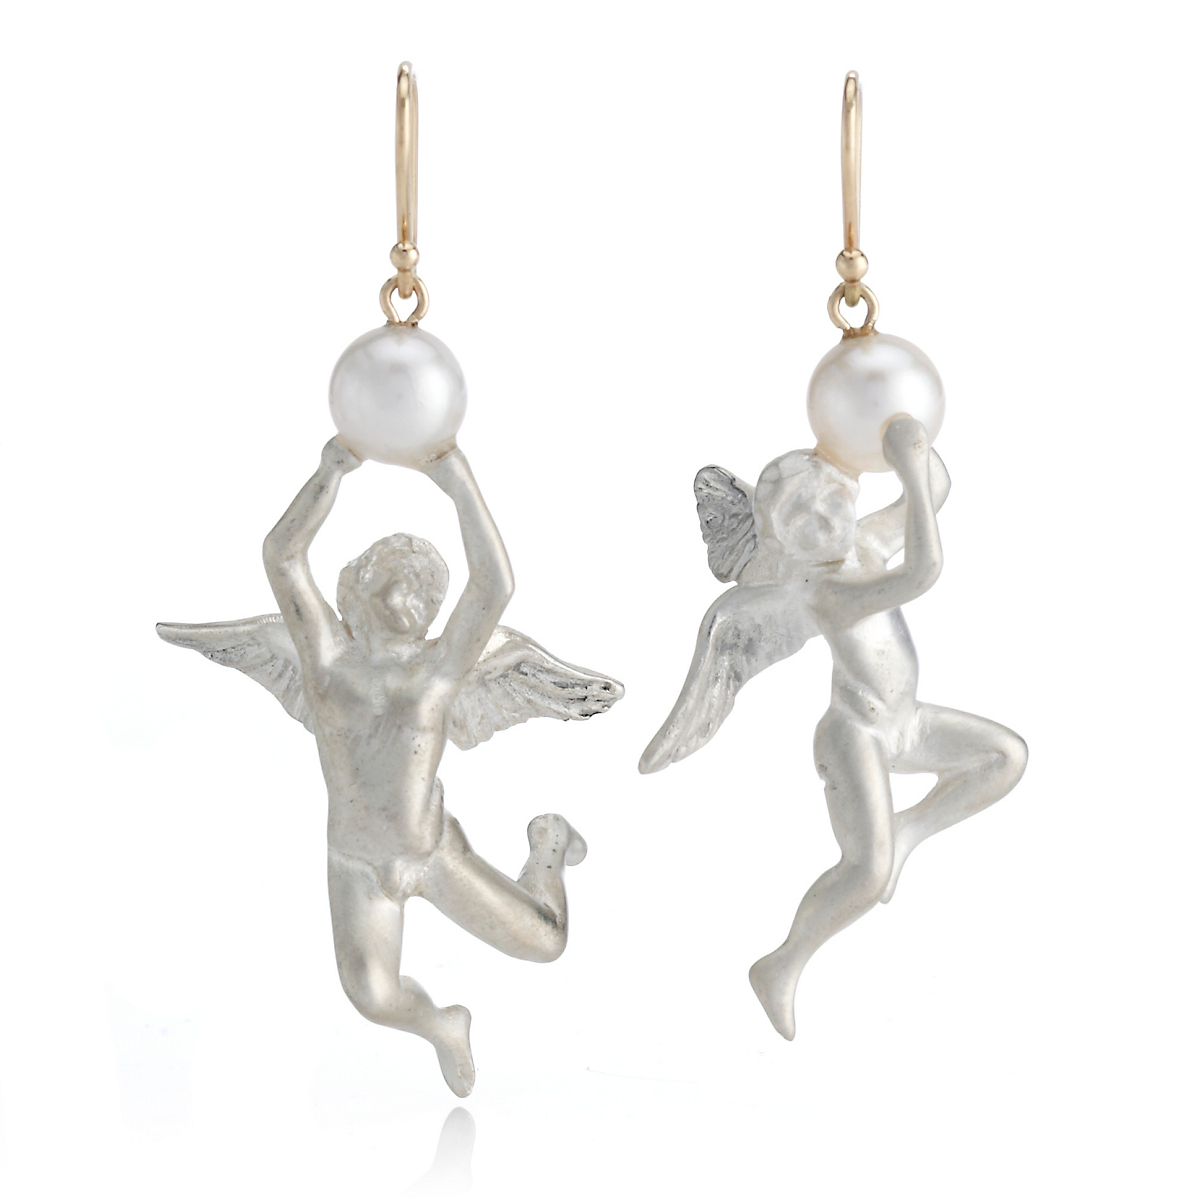 Gabriella Kiss Silver Angels Pearls Earrings